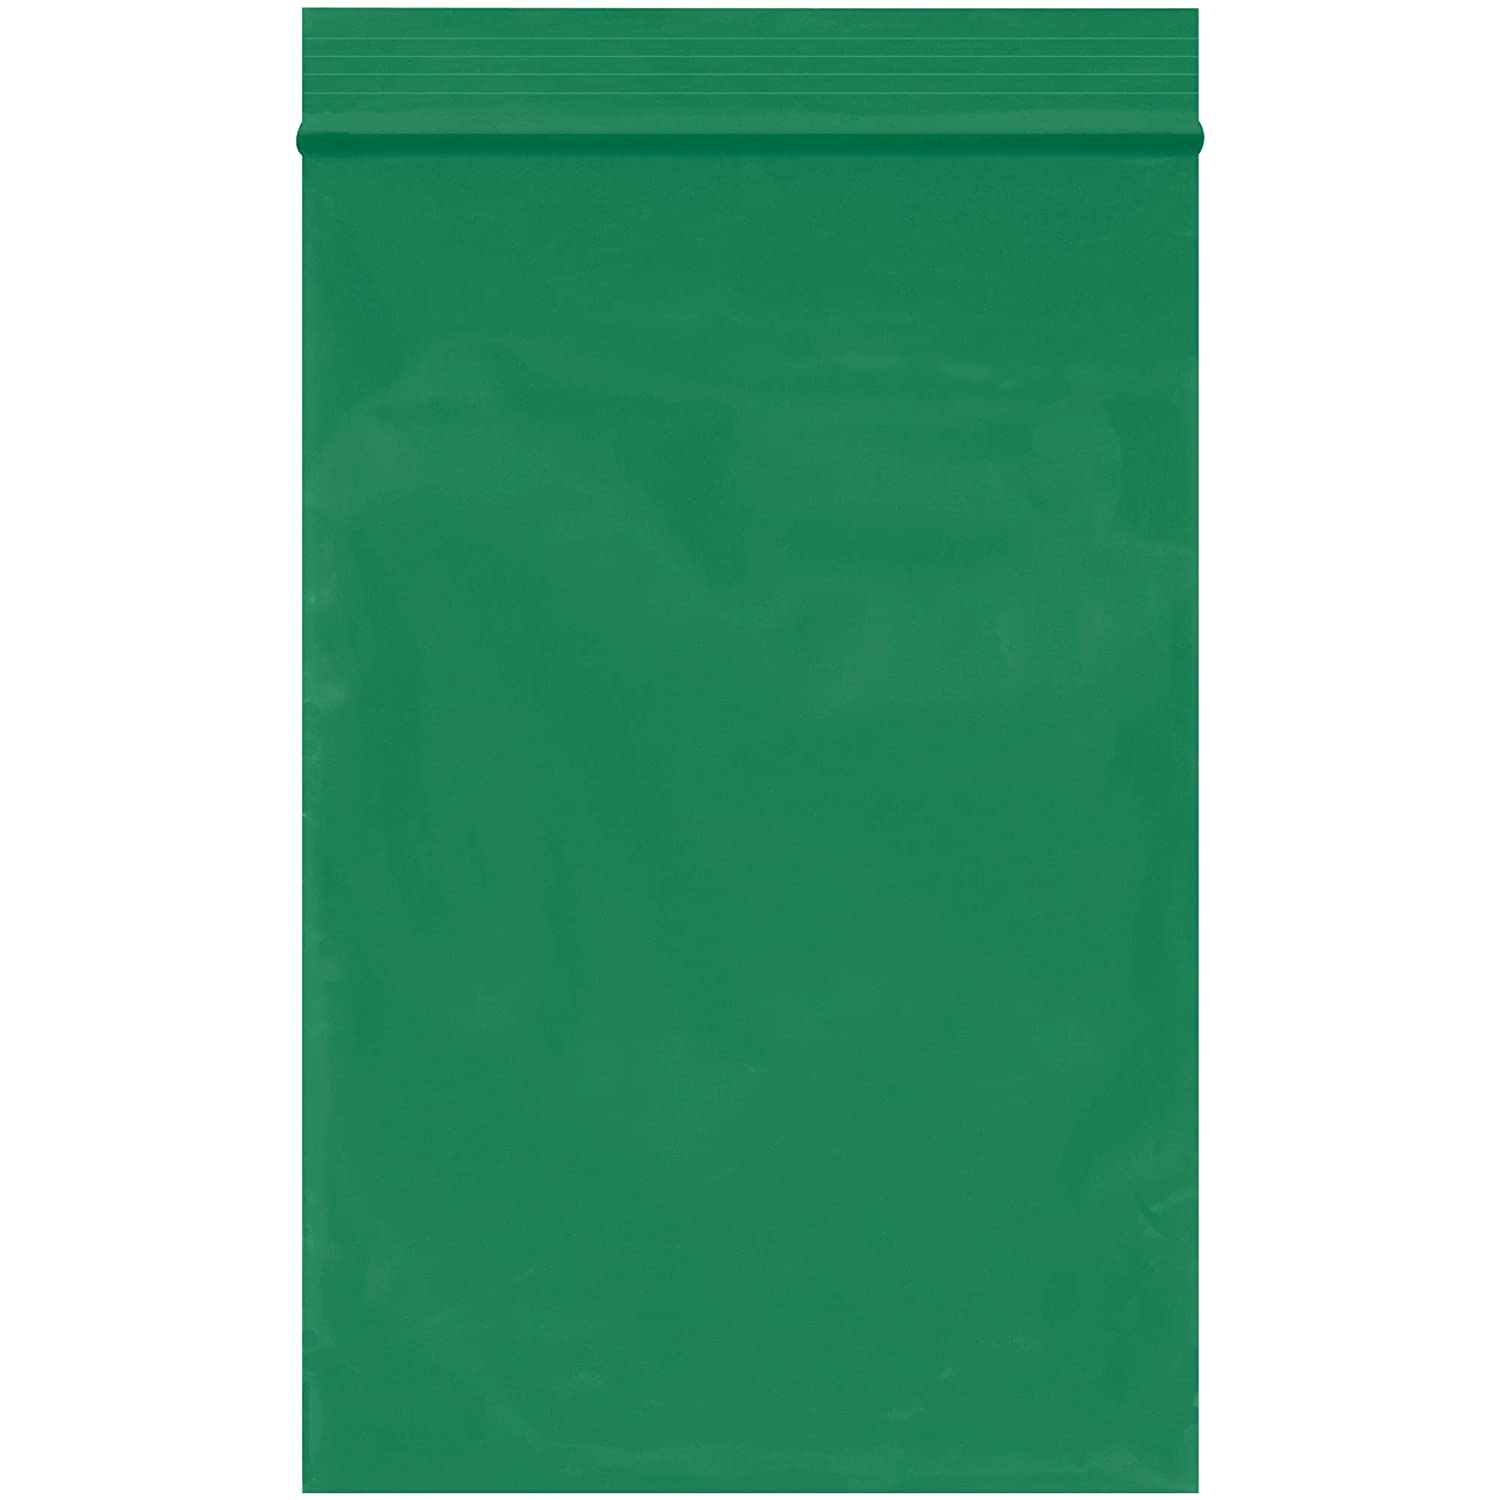 4 x 6-2 Mil Green Reclosable Poly Bags by Discount Shipping USA